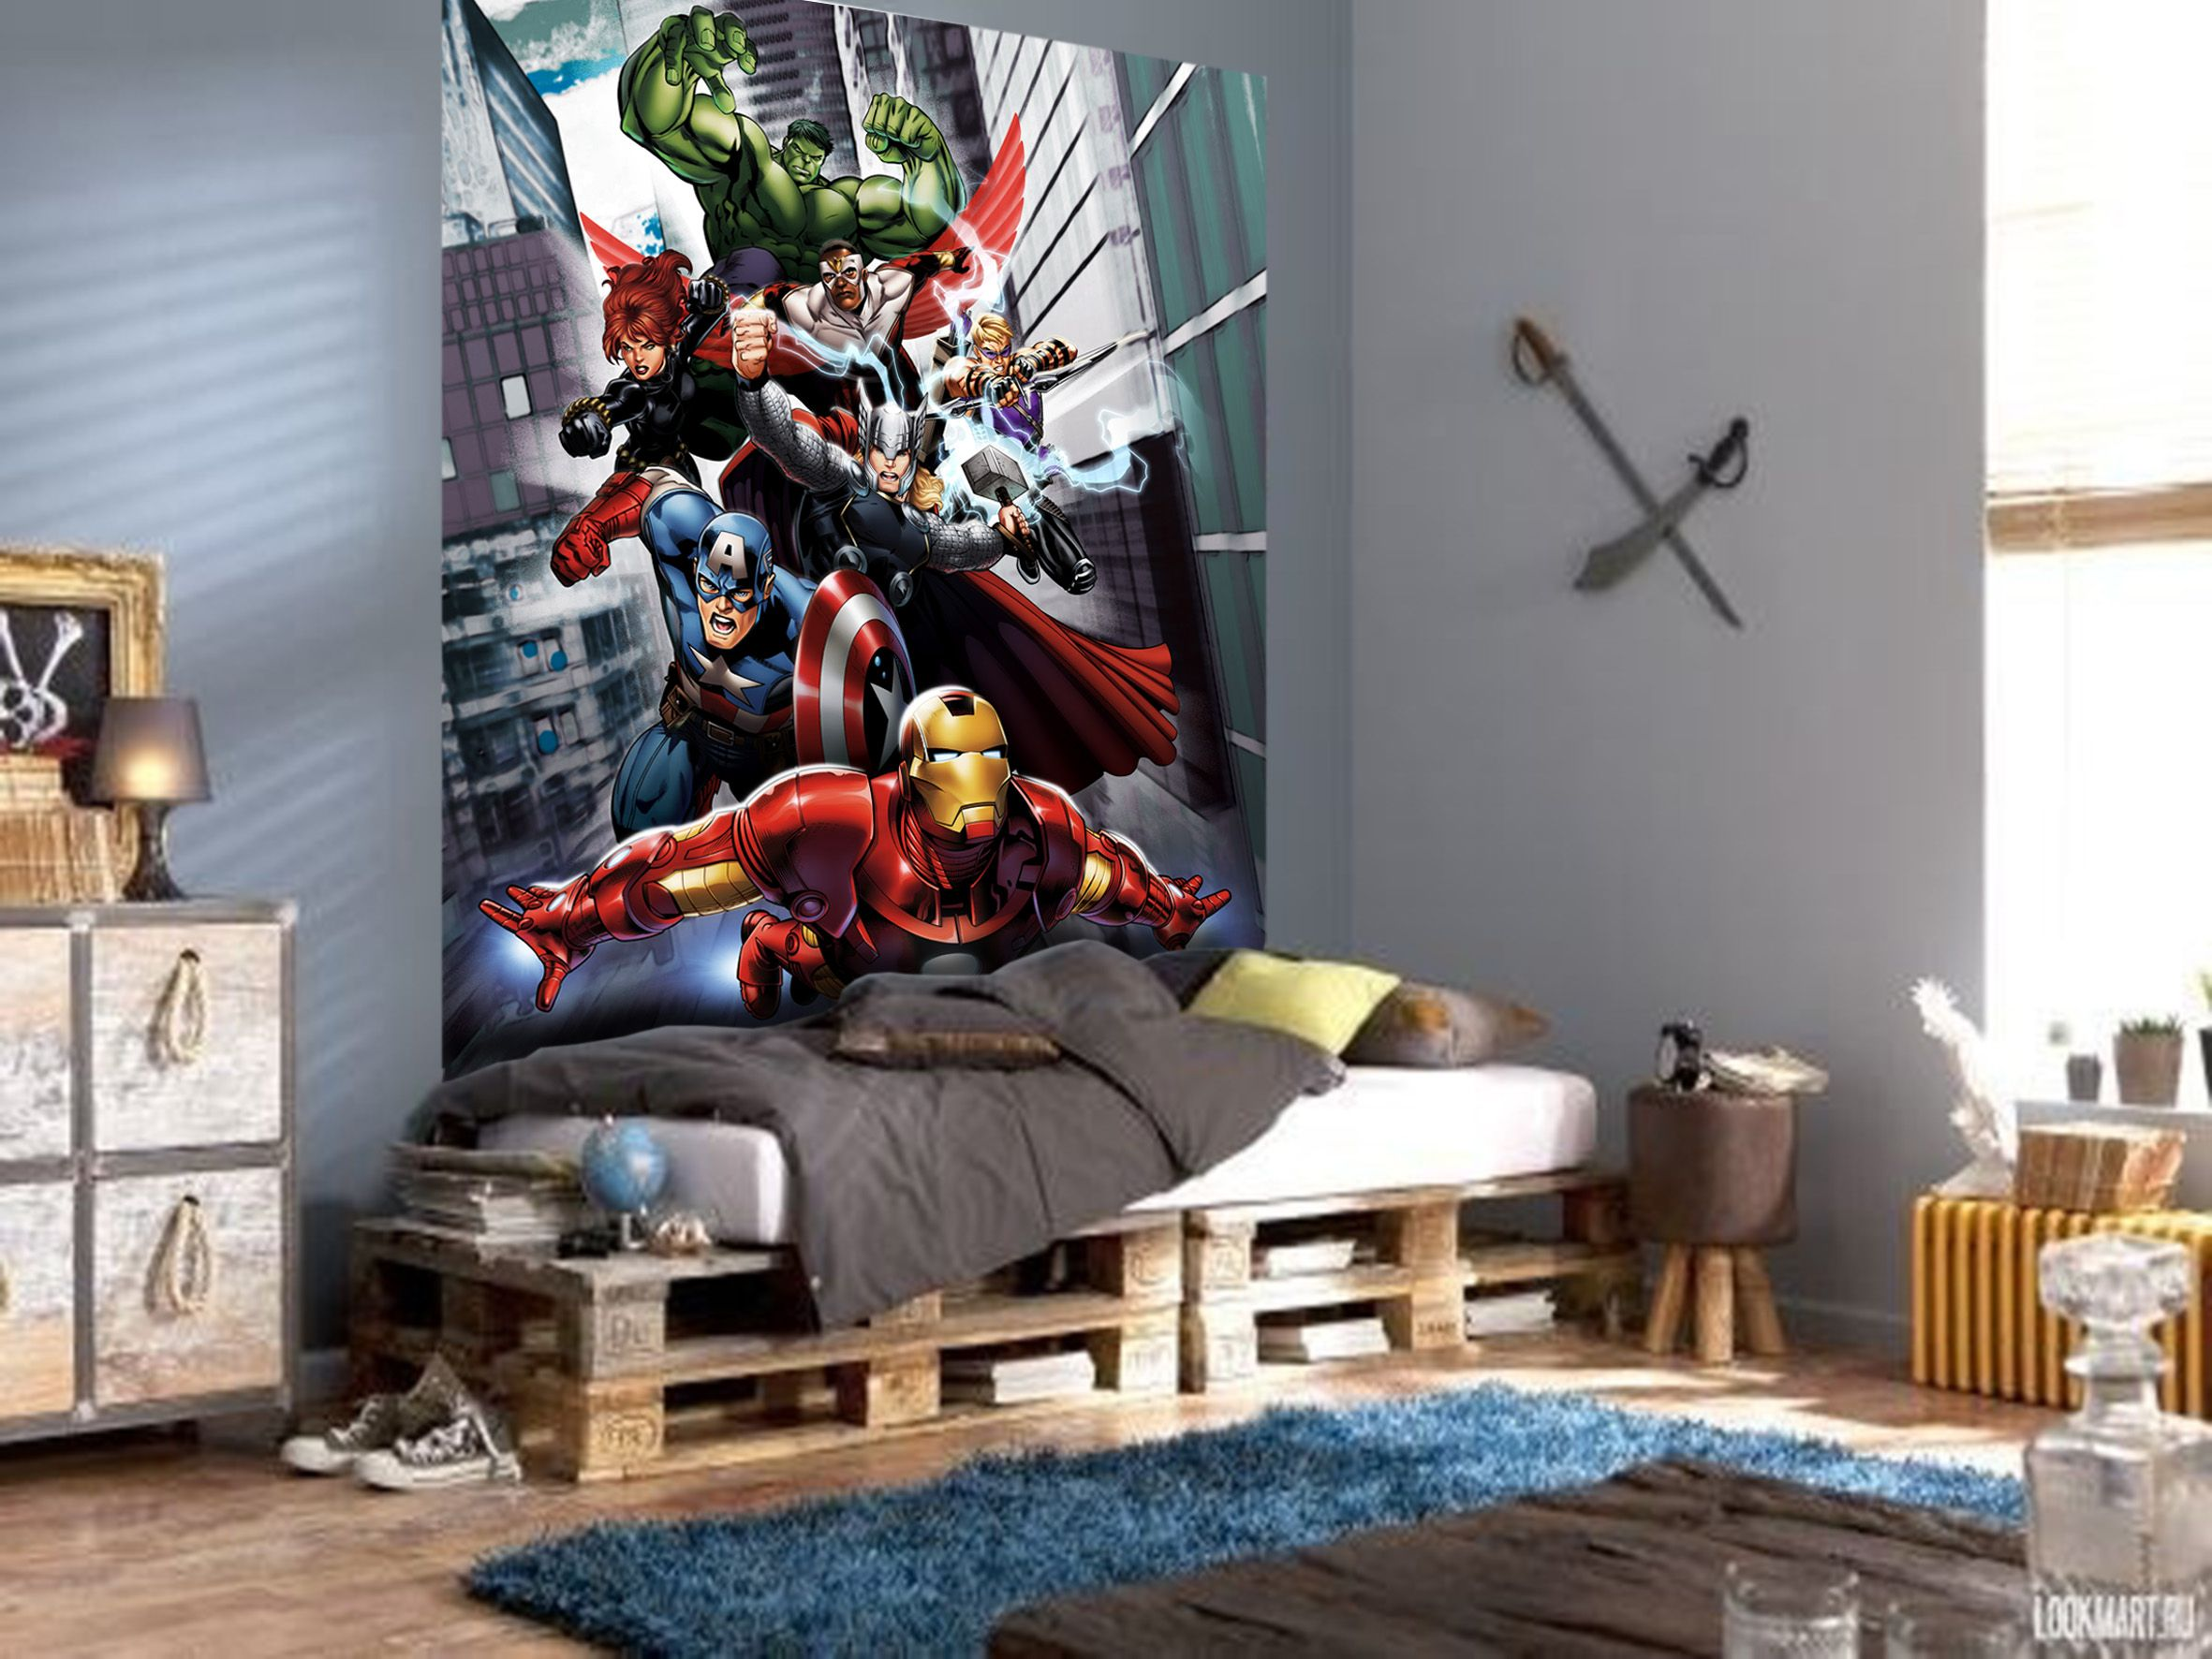 Iron man and avengers wall mural by wallandmore marvel for Avengers wallpaper mural